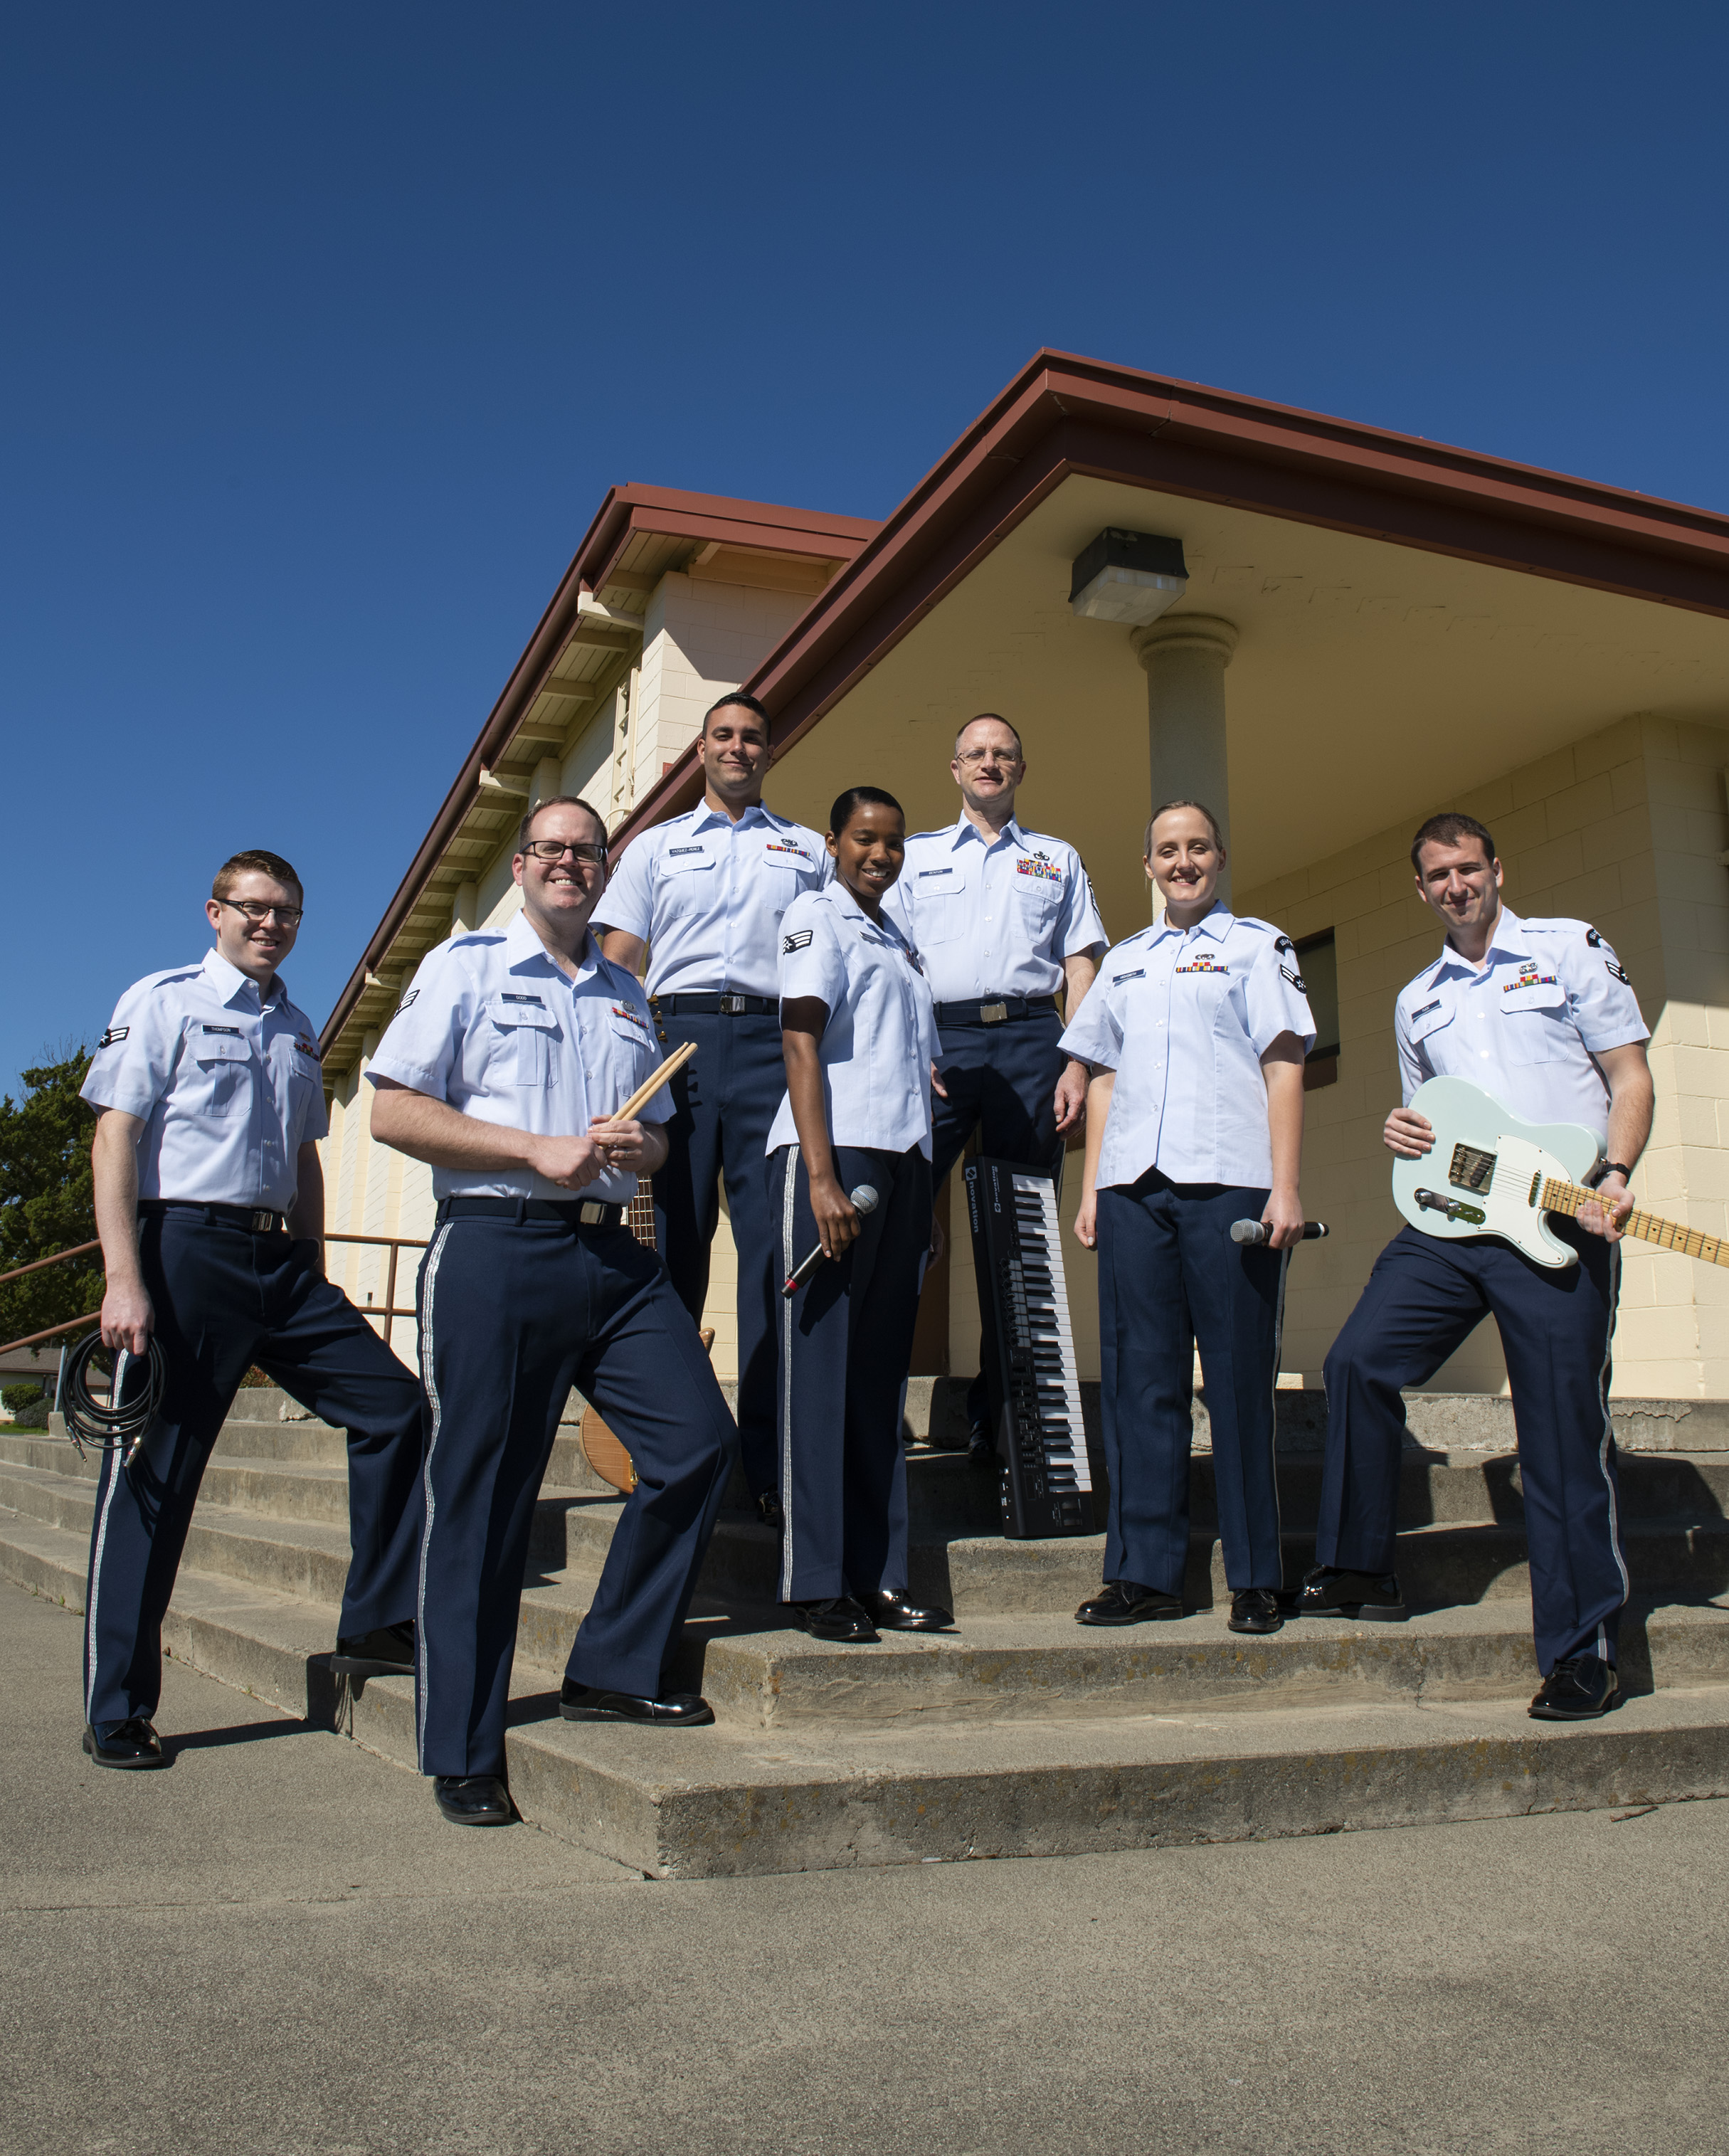 Deploying the Air Force band? It makes more sense than you